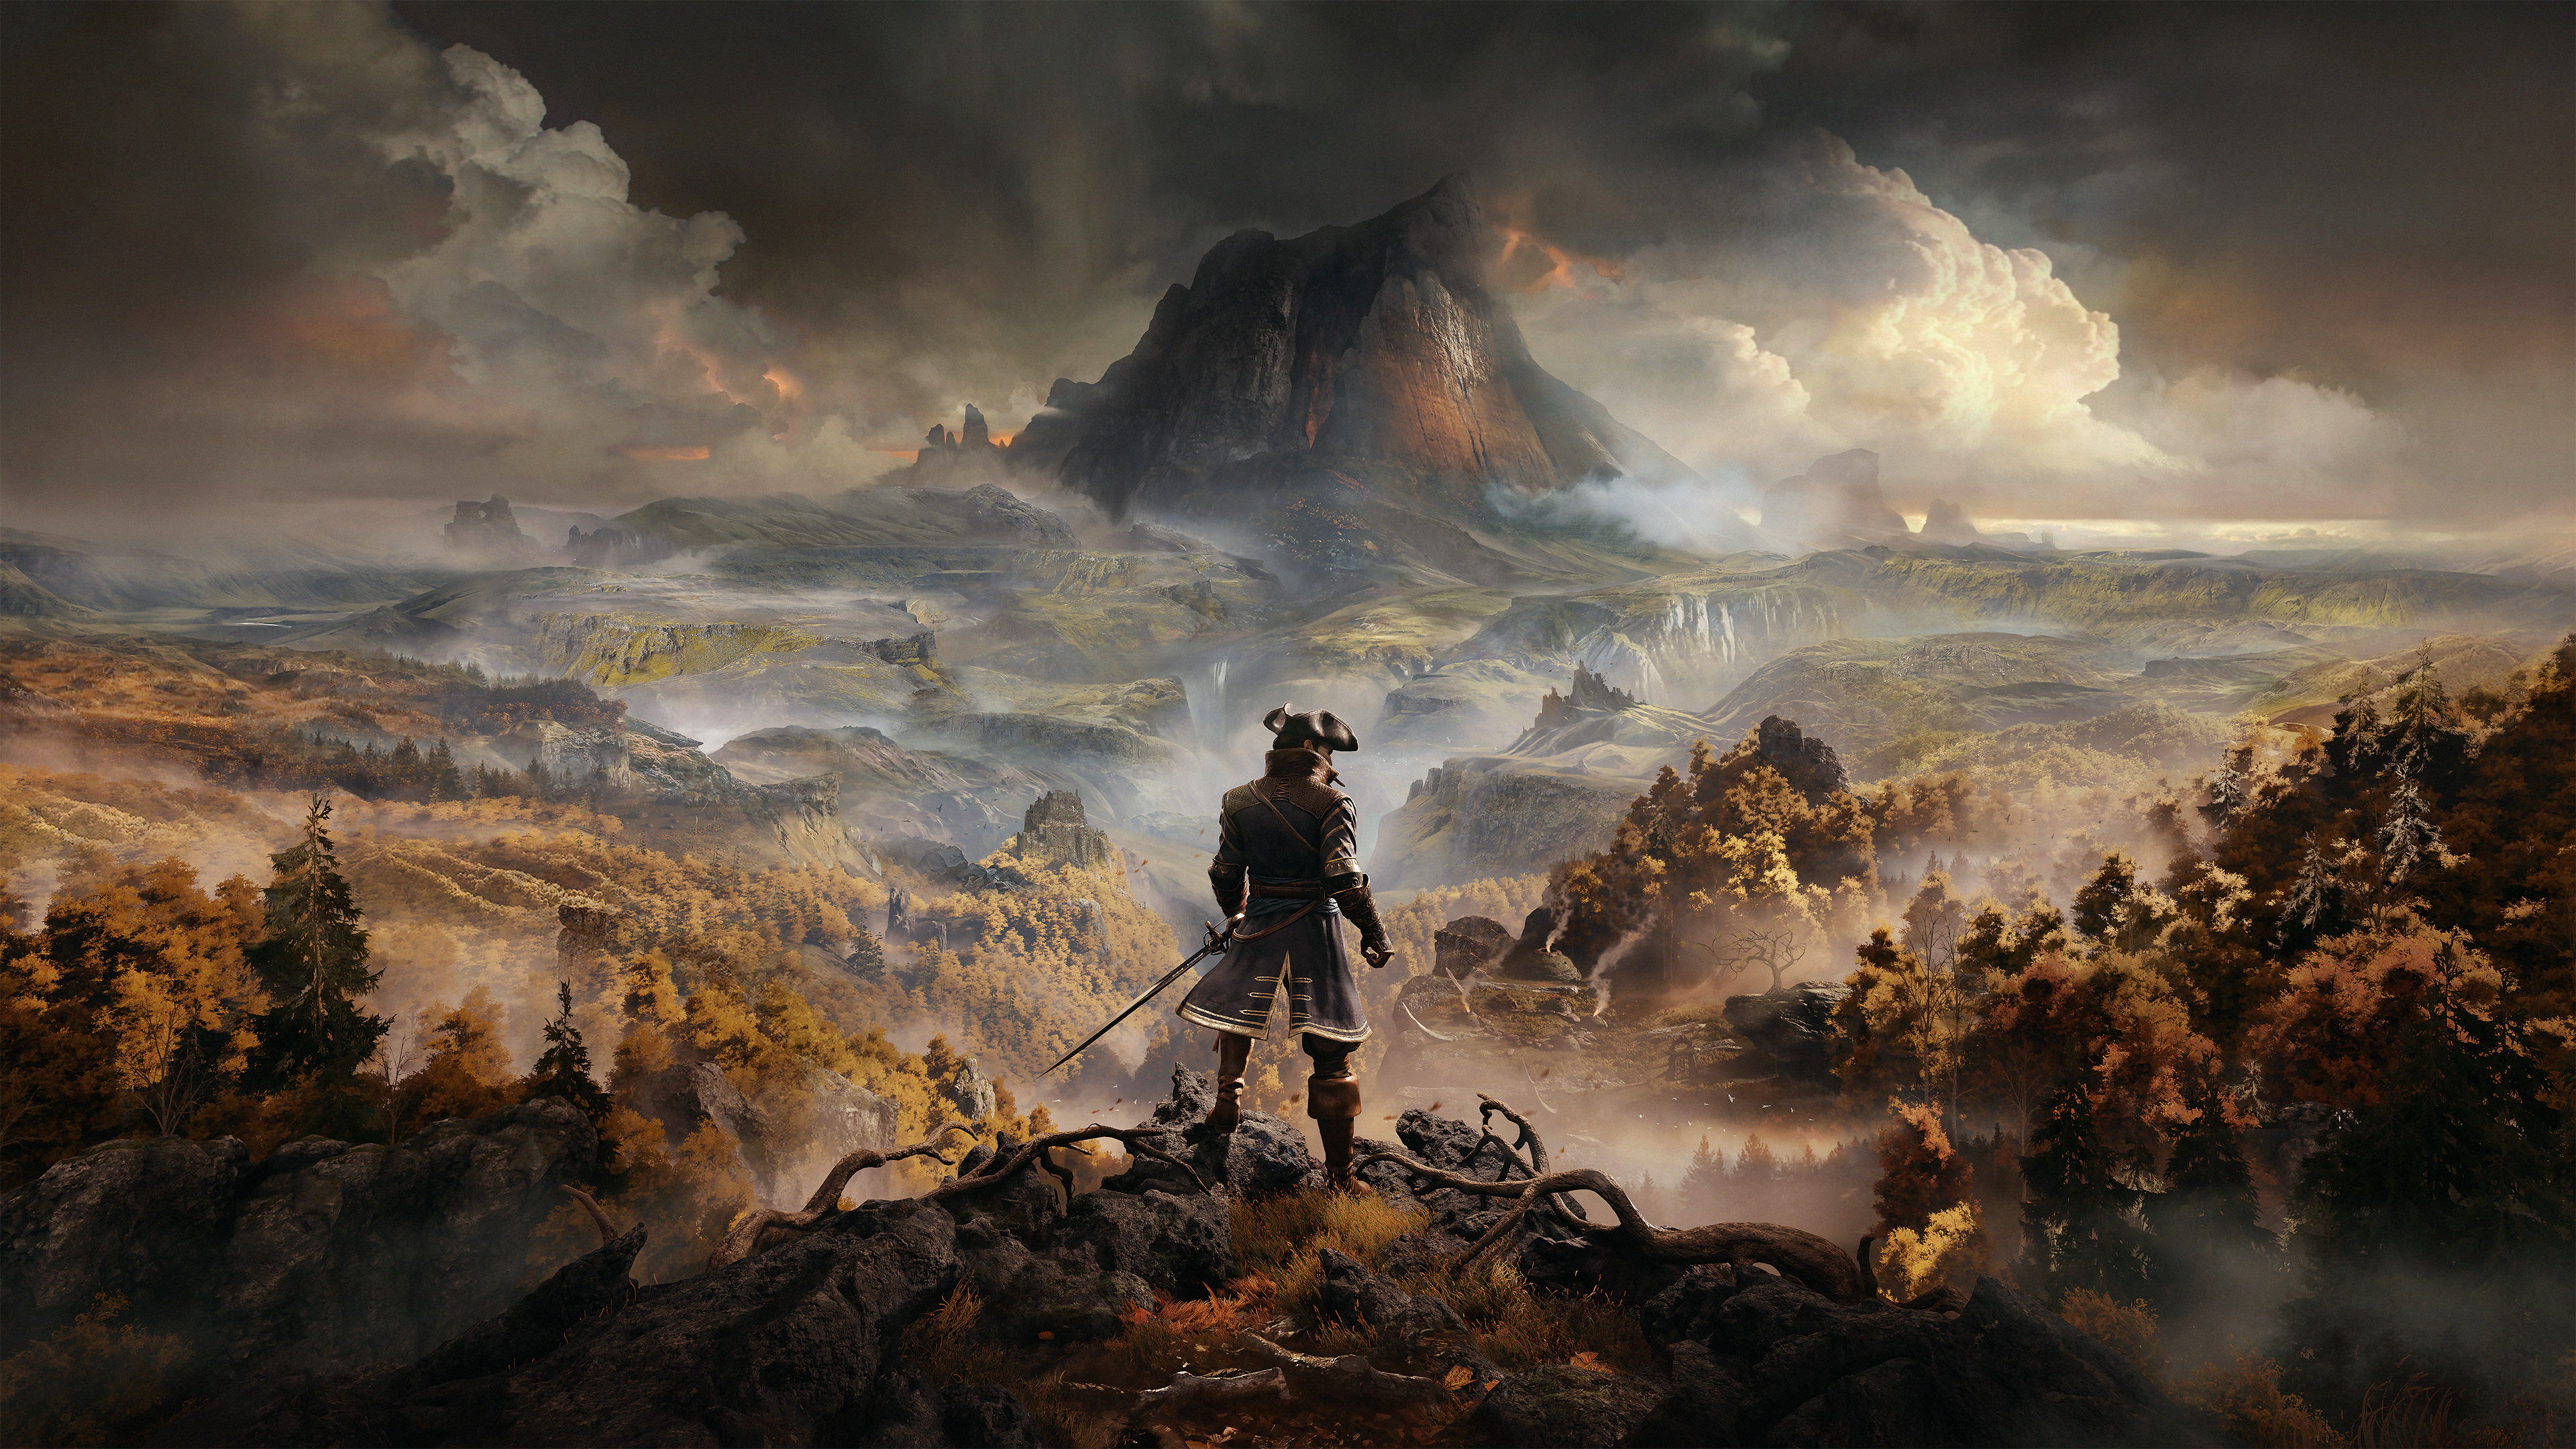 GreedFall feels like a BioWare game that time forgot